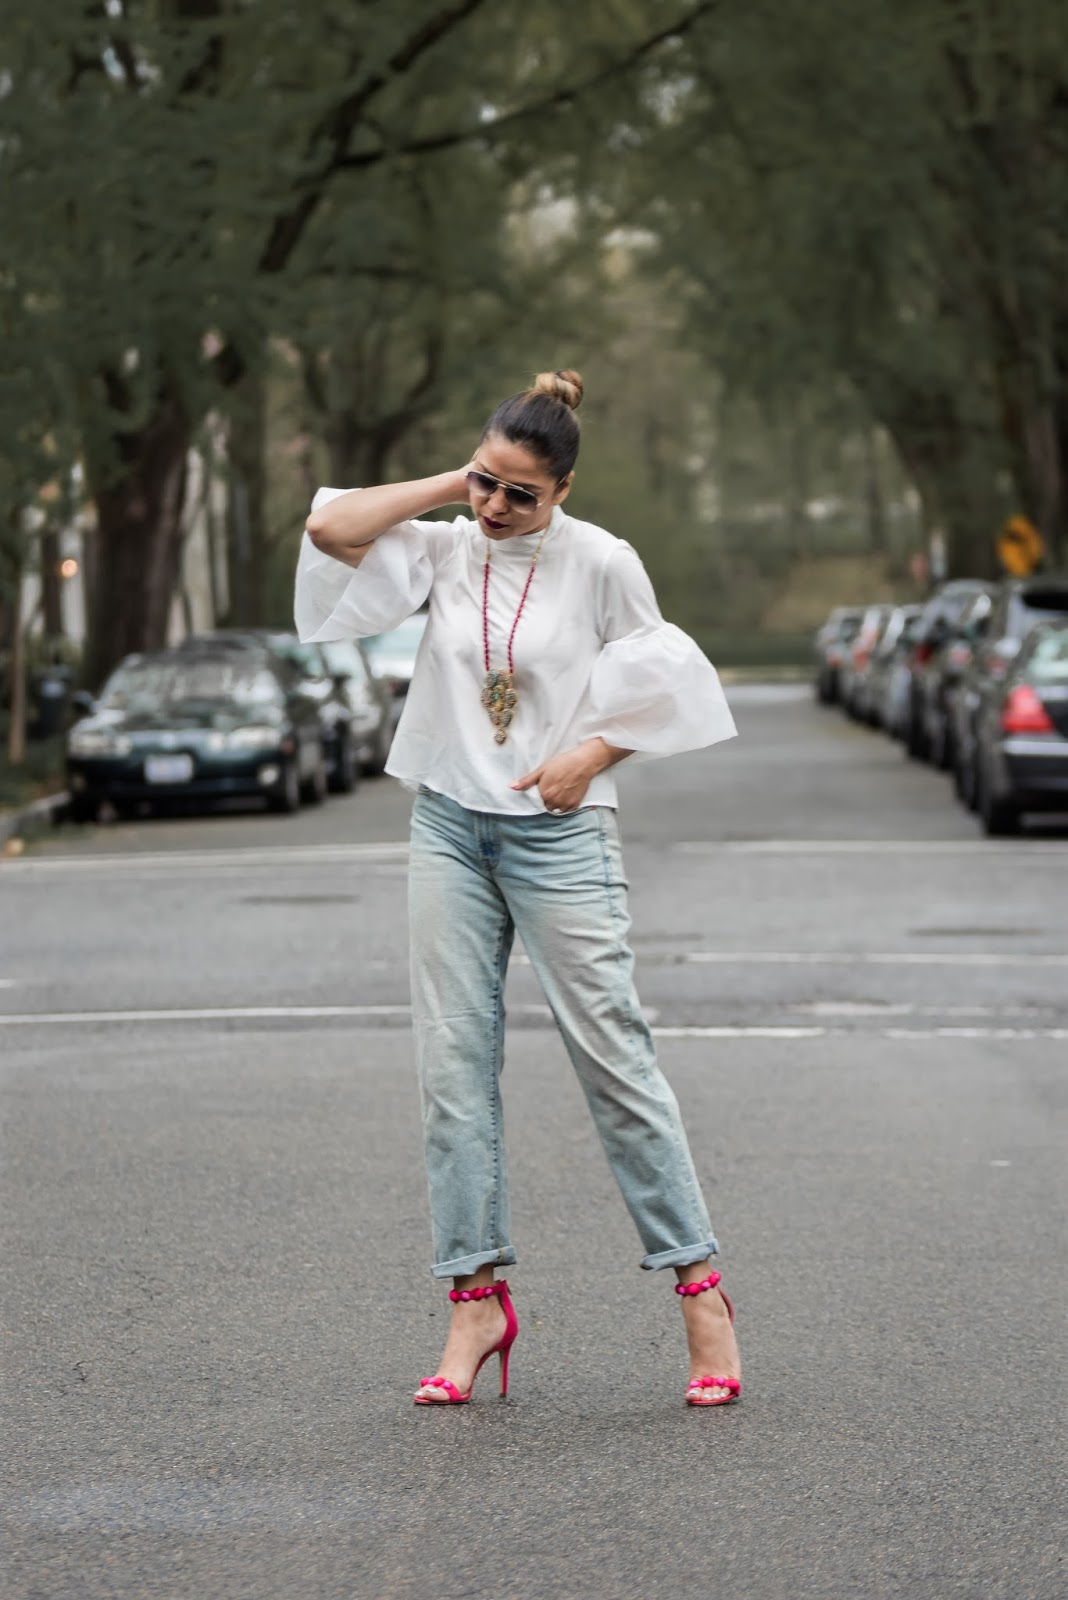 how to be that kickass mom, mom life, target white organza top, sam edelman addison heels, valentino bag, street style, casual look, dcblogger, myriad musings